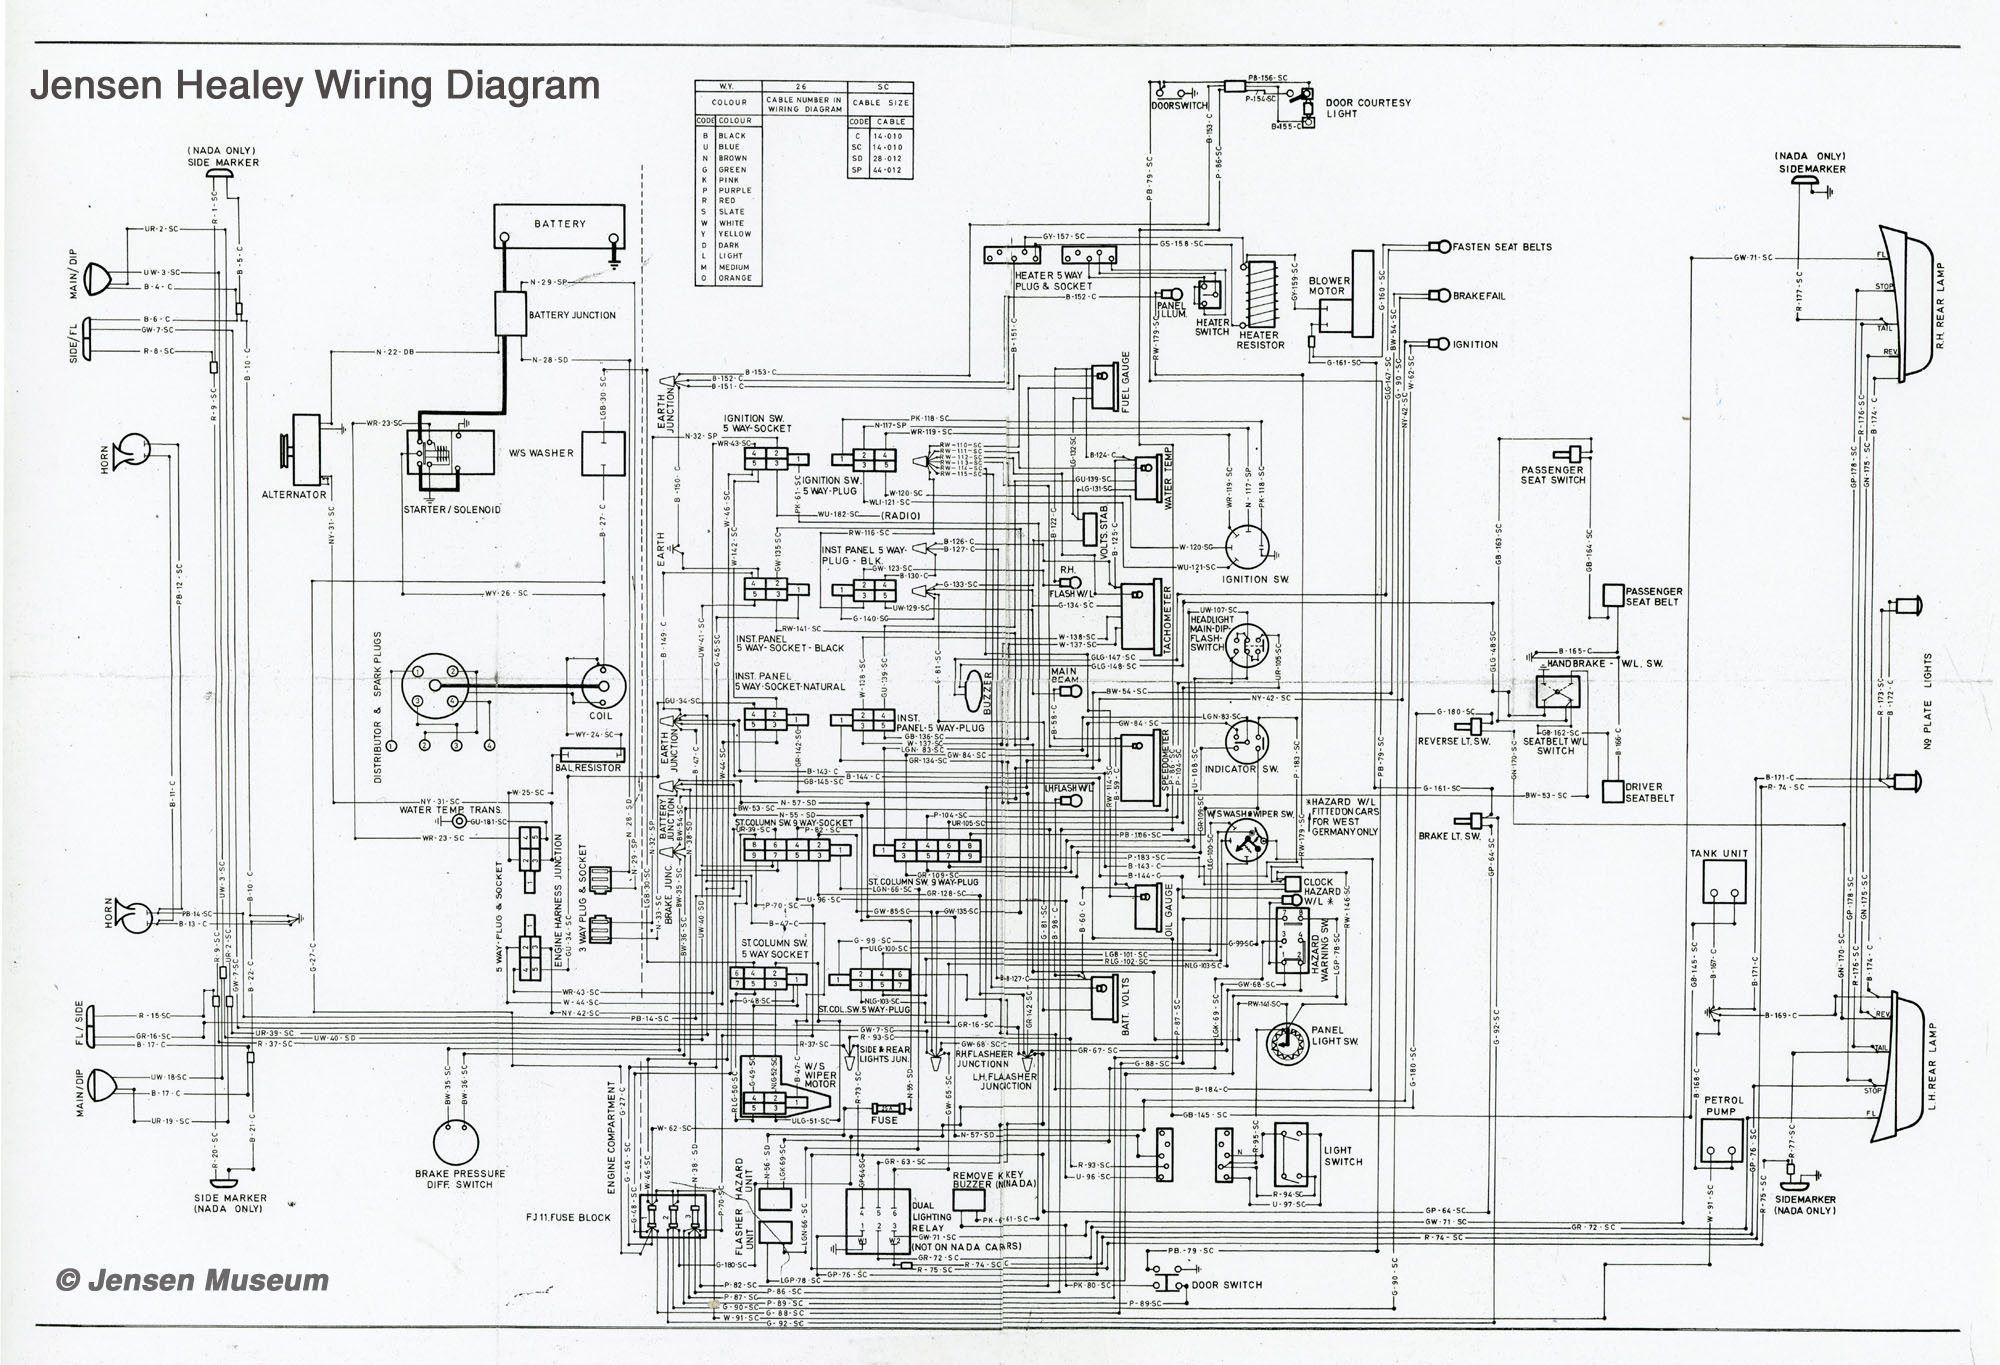 DIAGRAM] Austin Healey Wiring Diagram FULL Version HD Quality Wiring Diagram  - STRUCTUREPVCTAS.BORGOCONTESSA.ITstructurepvctas.borgocontessa.it